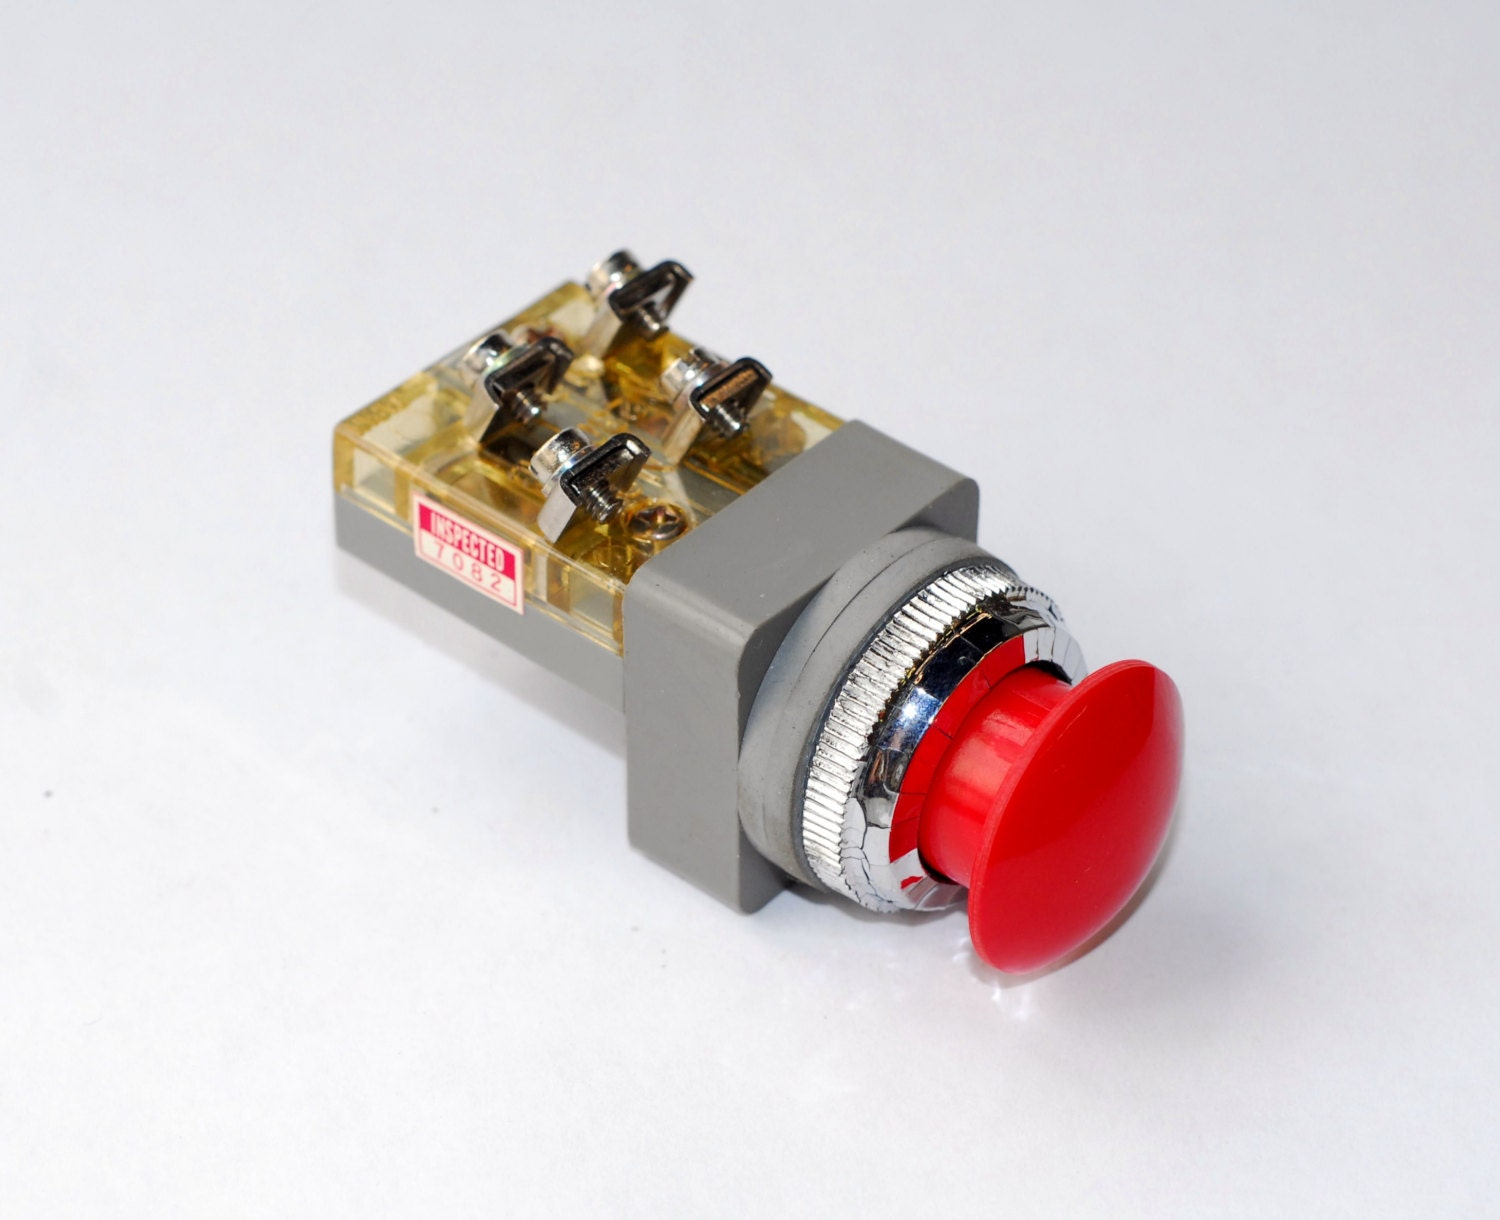 panic button big red push button switch made by alco. Black Bedroom Furniture Sets. Home Design Ideas